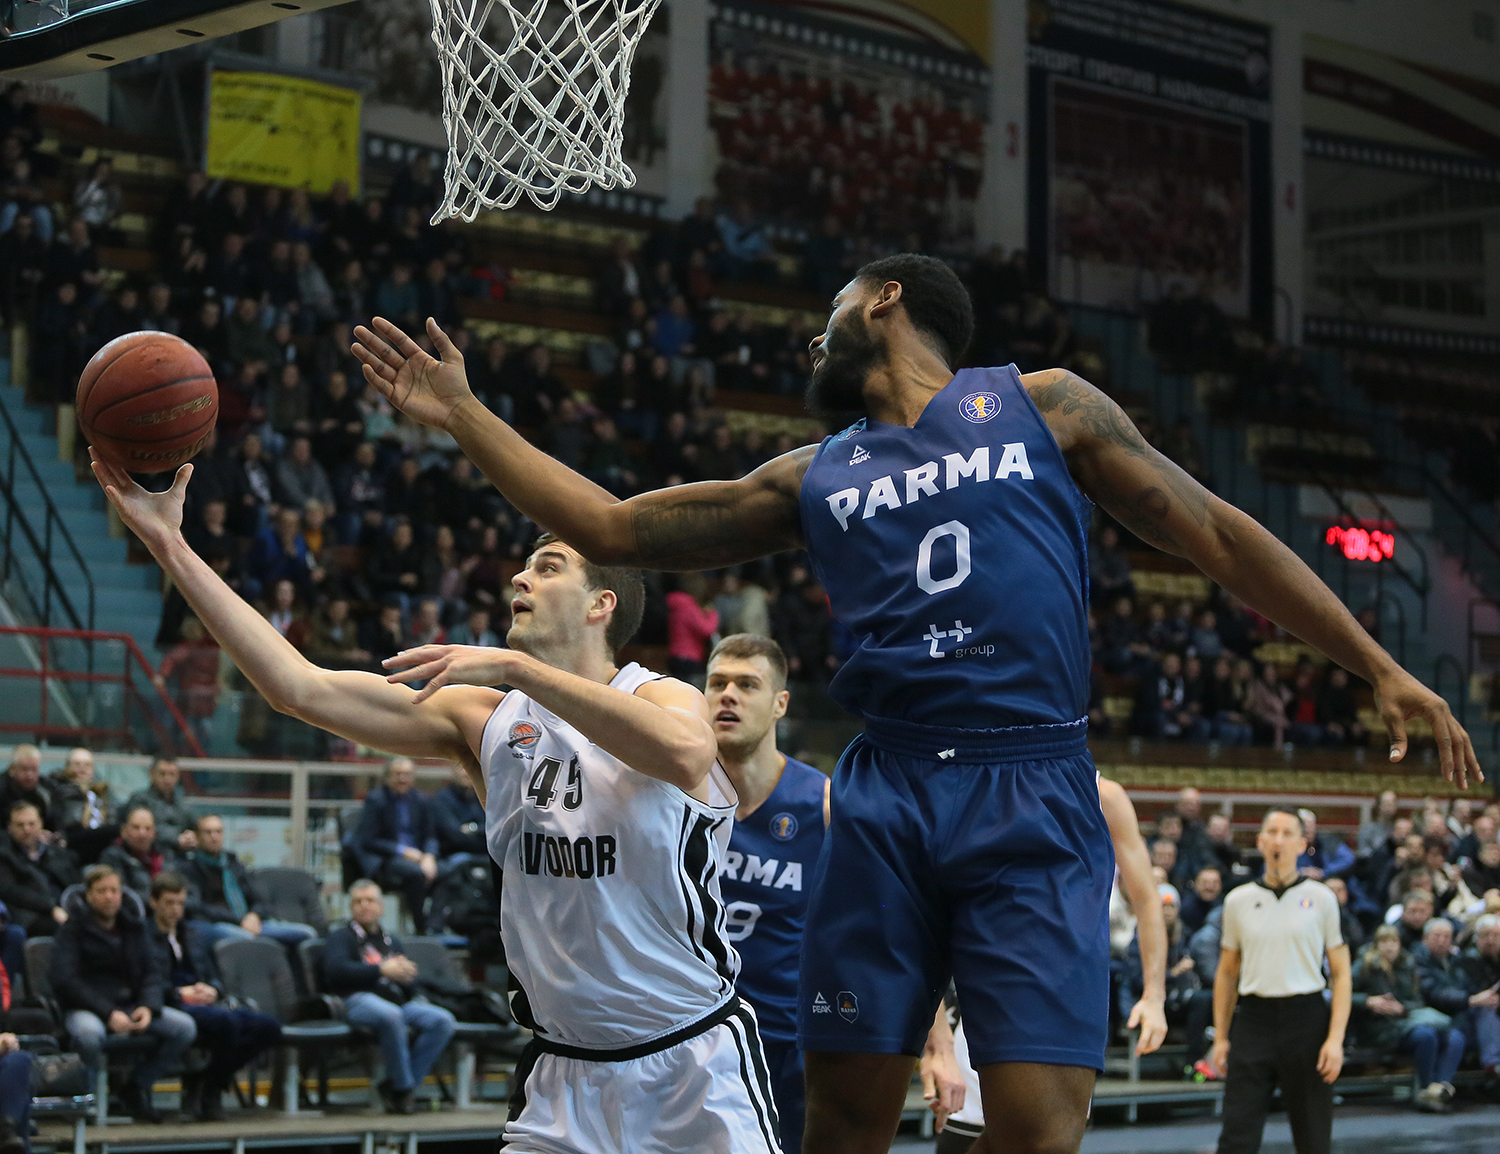 Avtodor Cruises vs. PARMA, Returns To .500